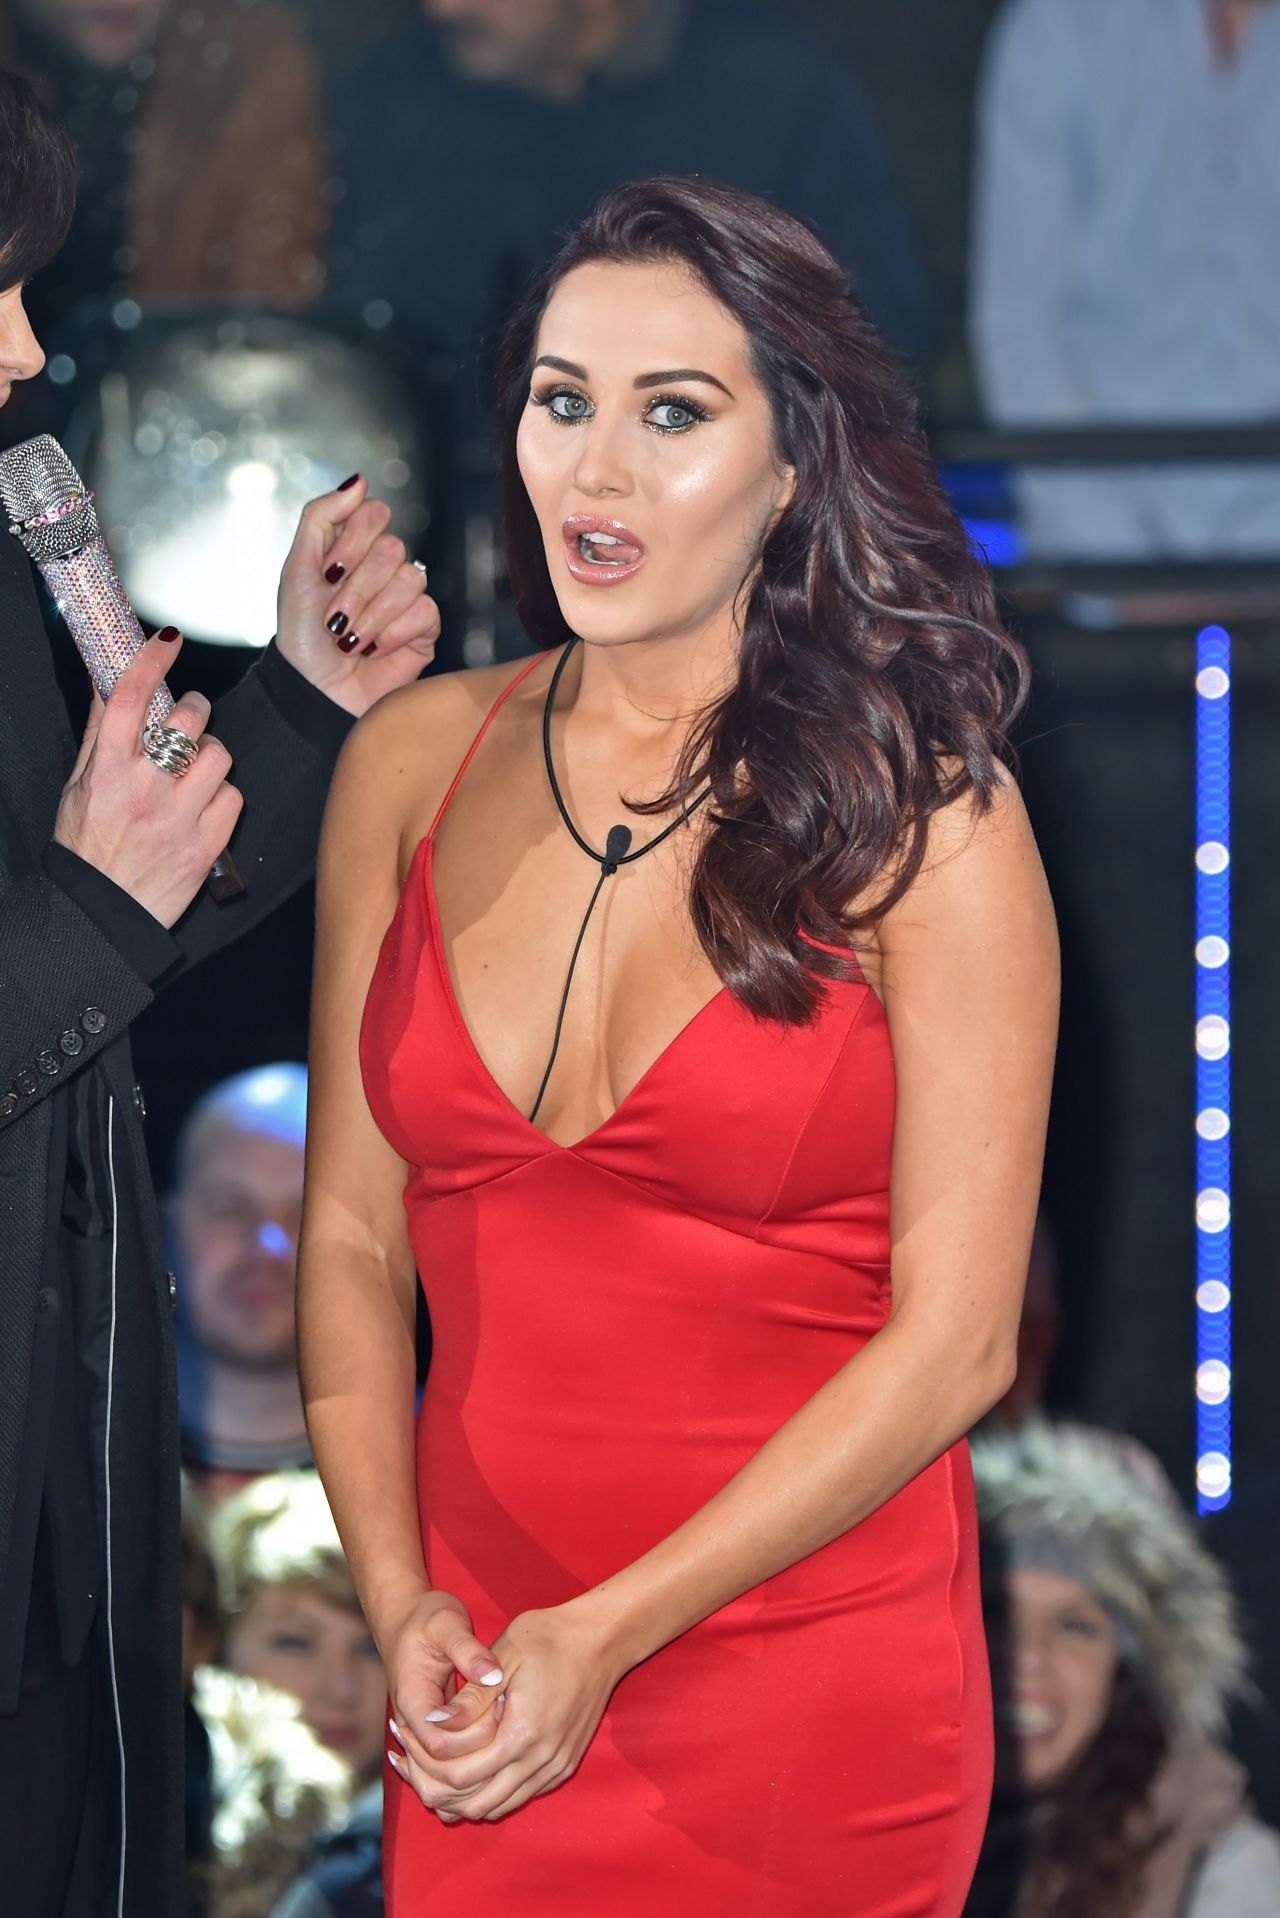 Celebrity Big Brother Review: Week #3 | The Young Folks